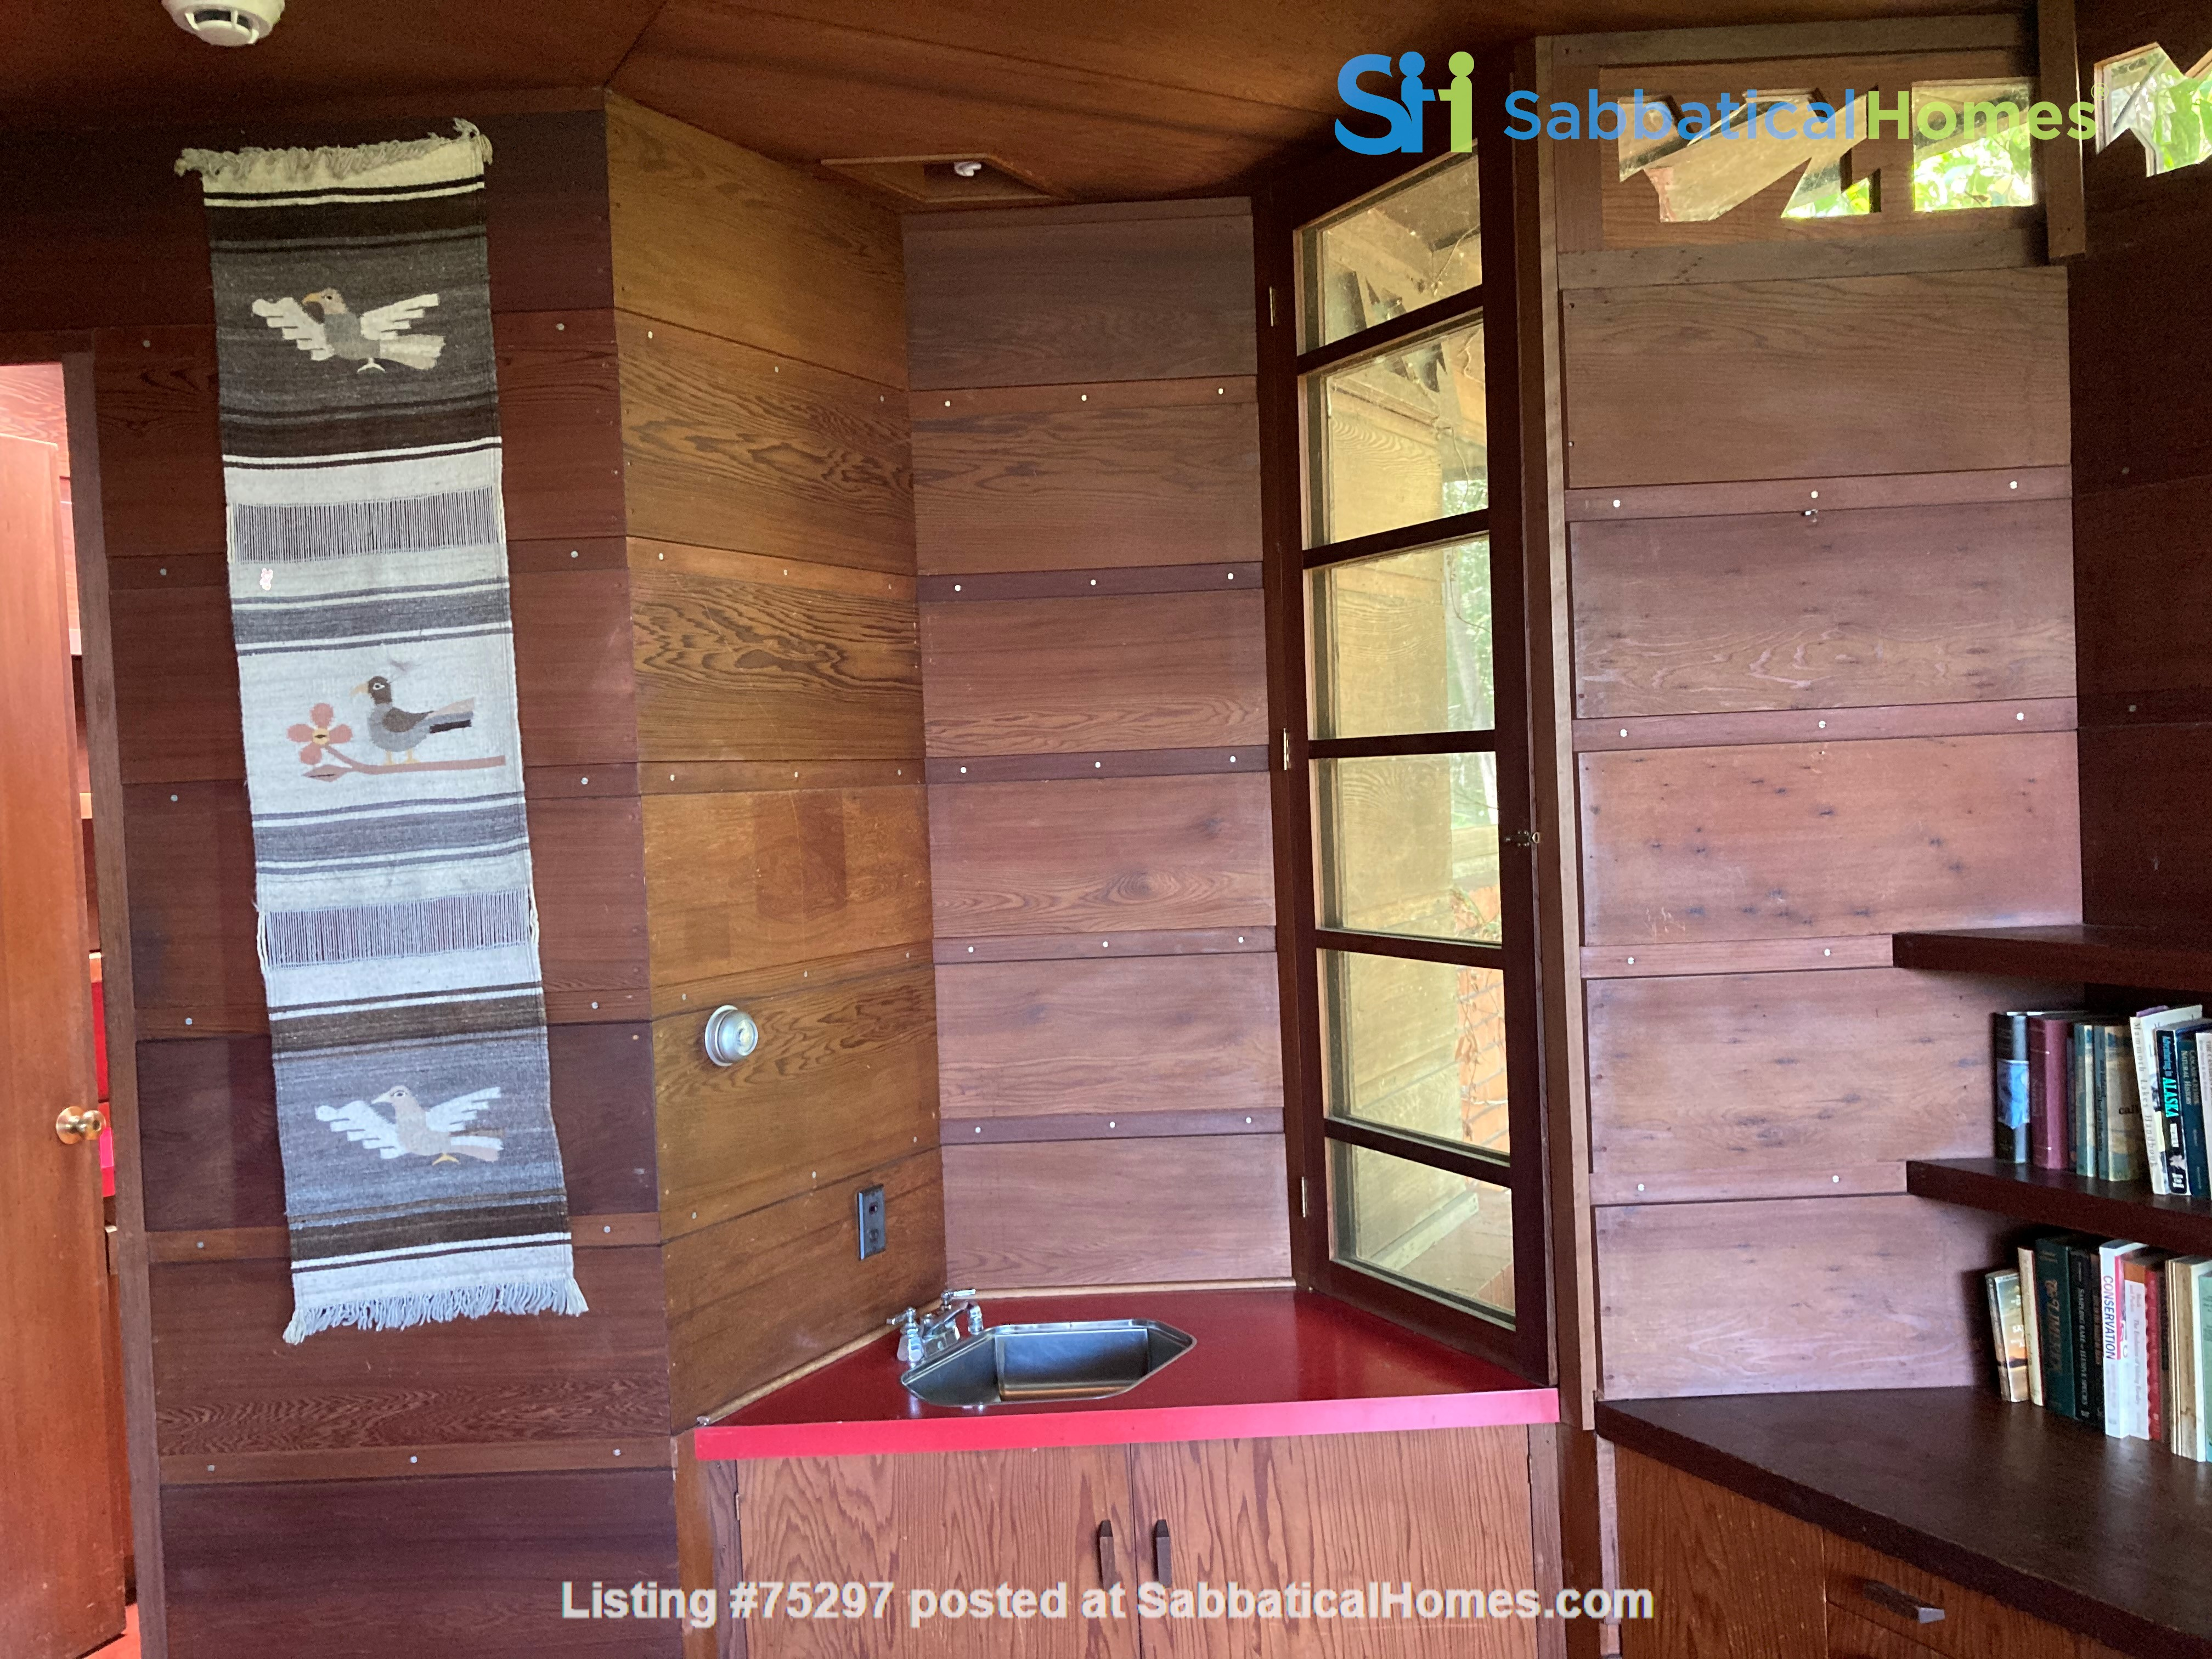 Frank Lloyd Wright house near Stanford, Silicon Valley, SF, and Berkeley Home Rental in Hillsborough 3